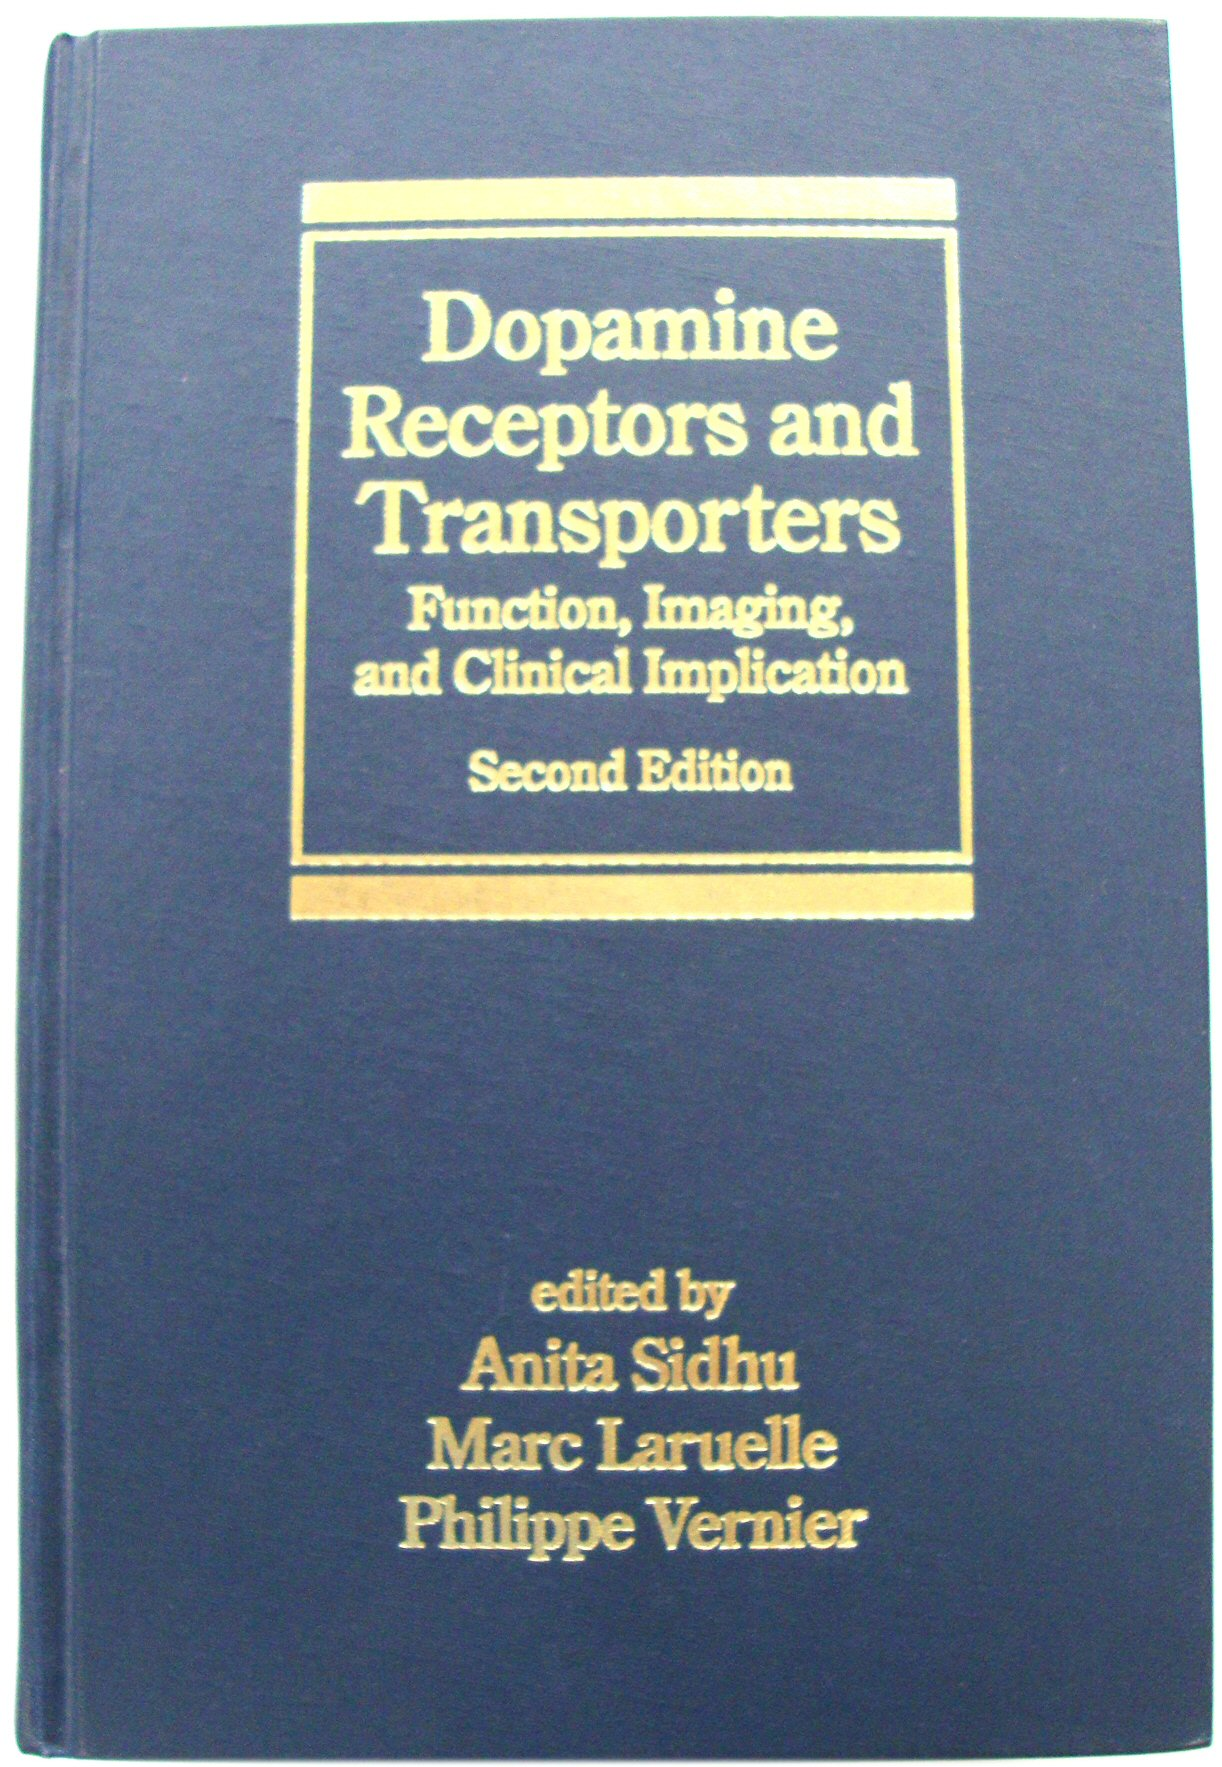 Image for Dopamine Receptors and Transporters: Function, Imaging, and Clinical Implication